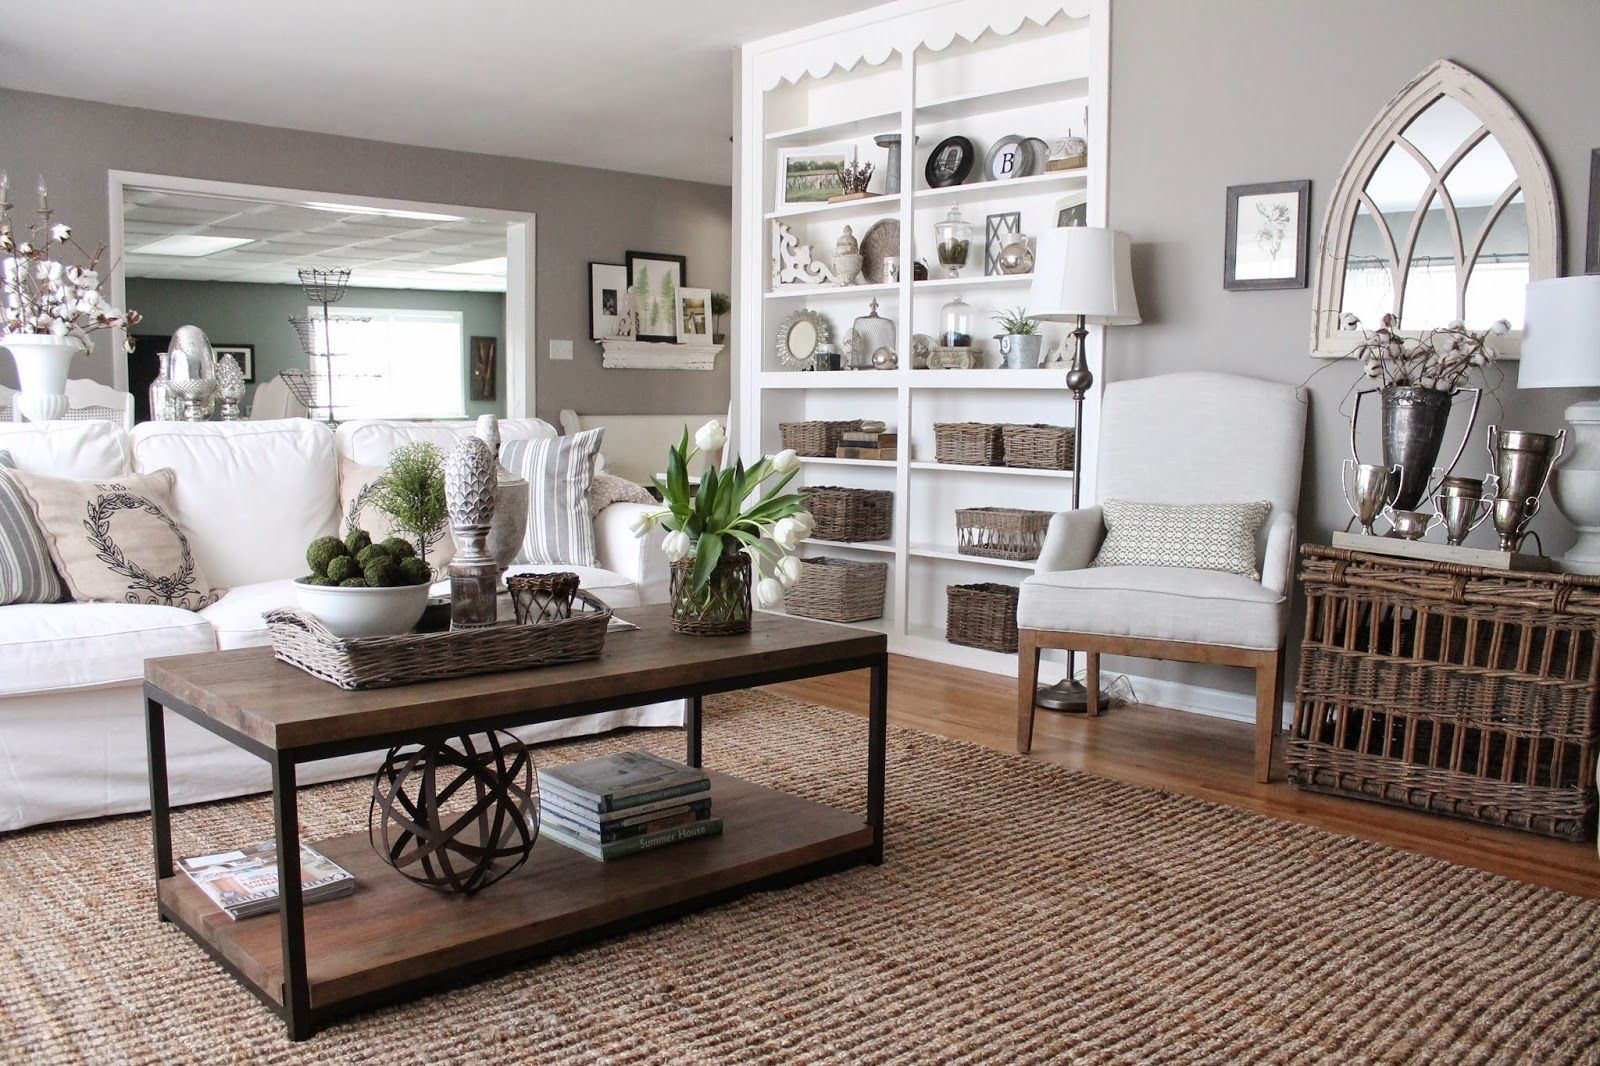 Eclectic Home Tour - 12th and White Blog